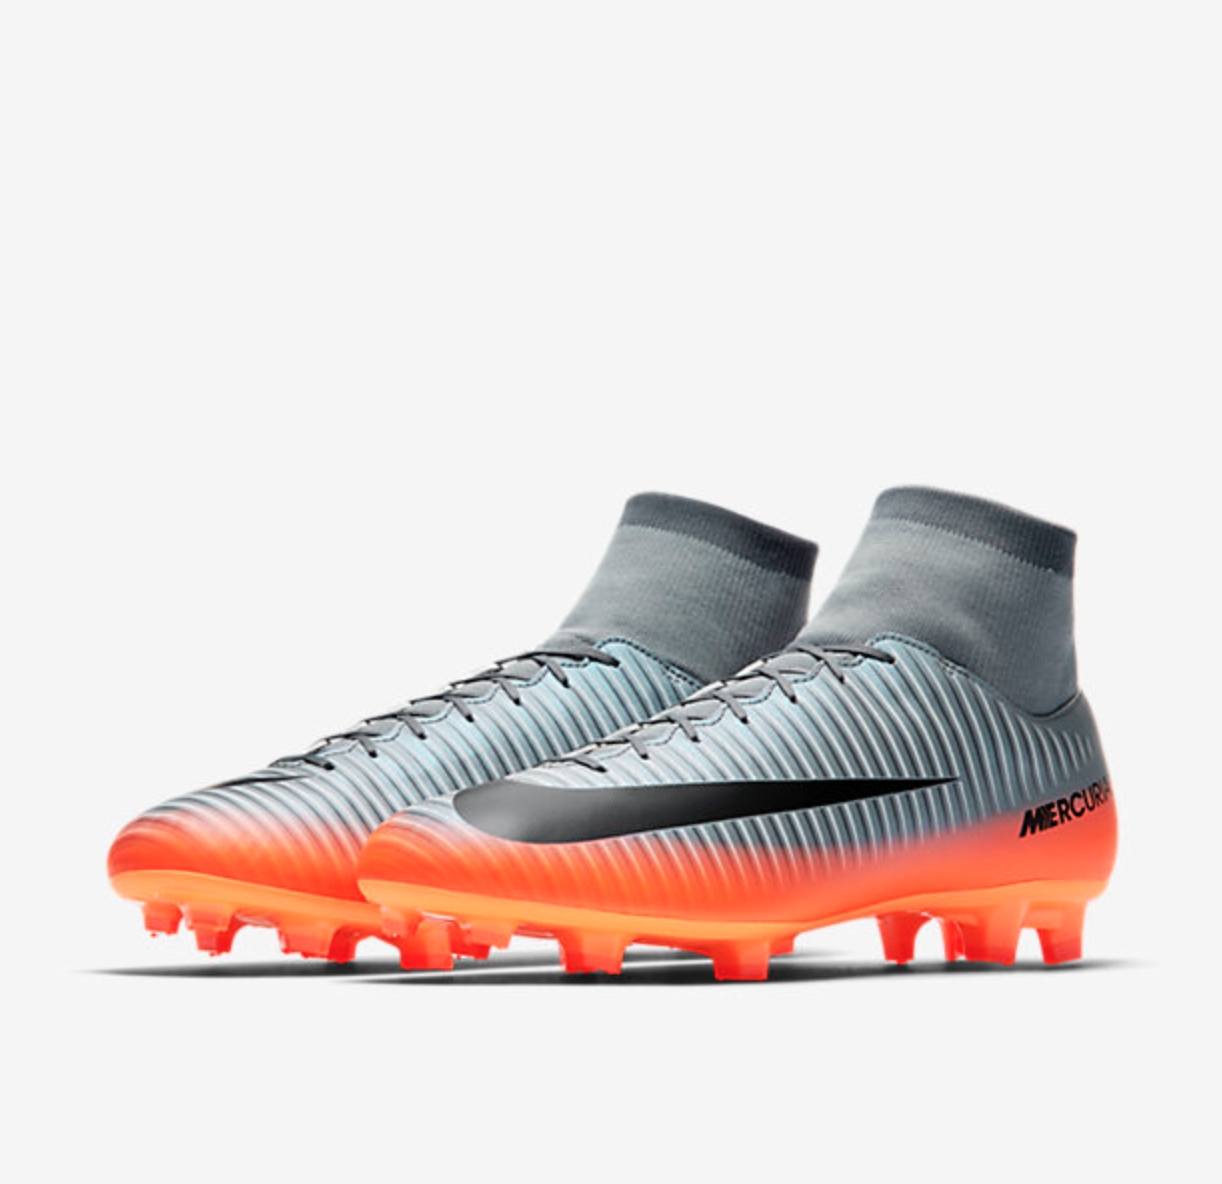 Peluquero Salida Himno  NIKE MERCURIAL VICTORY VI DYNAMIC FIT CR7 FG — Soccer International